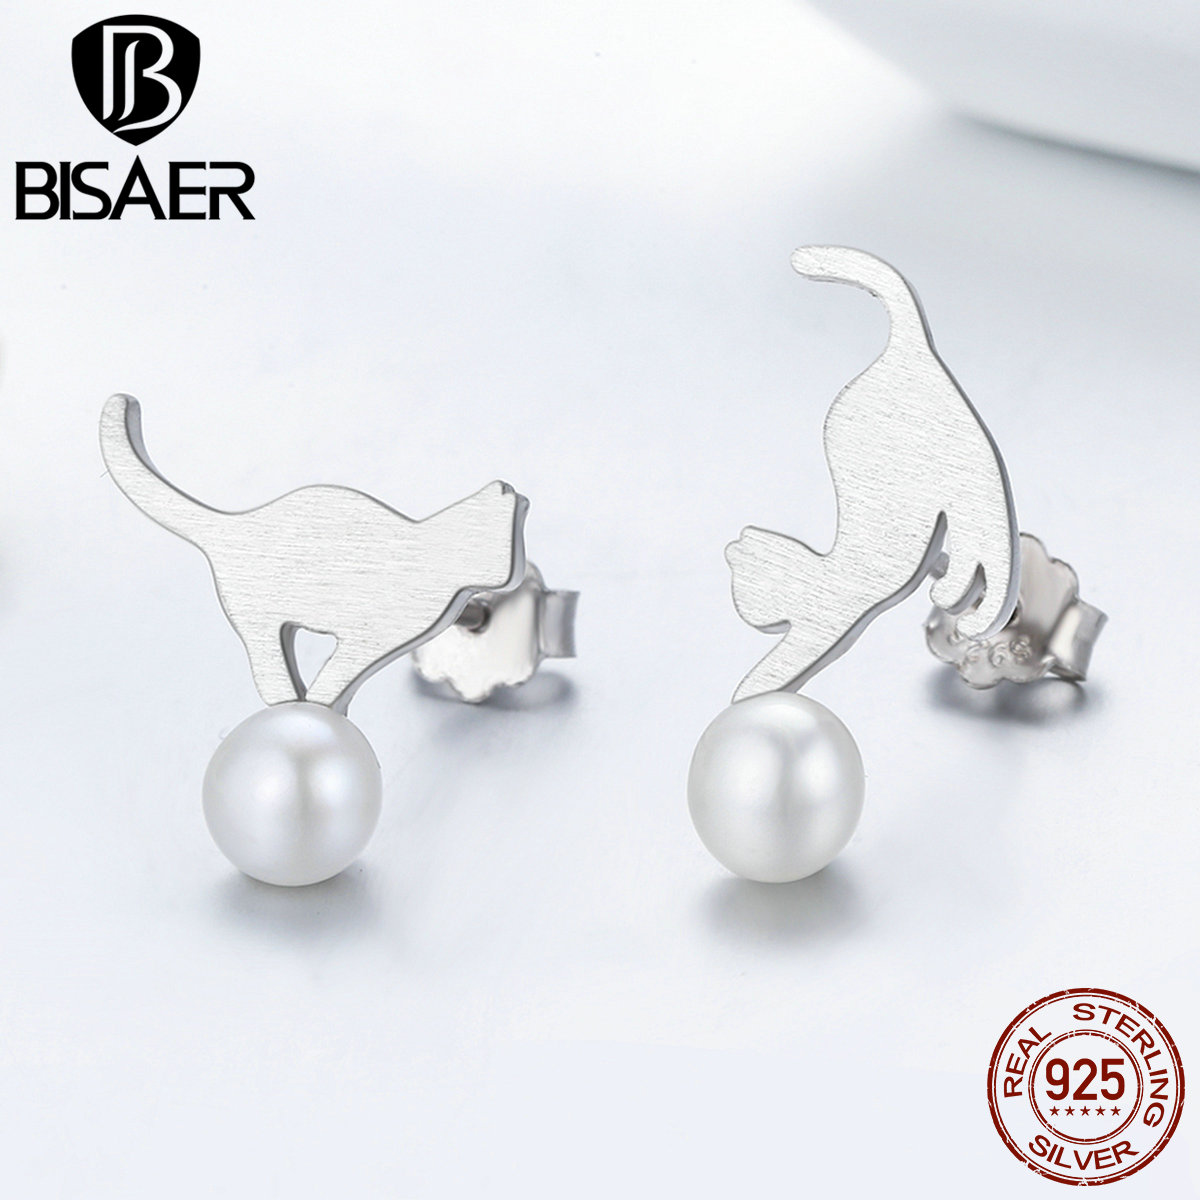 BISAER Hot Sale 100% 925 Sterling Silver Small Earrings Cat Stud Earrings For Women Fashion Jewelry Bijoux New Year Gift GXE235